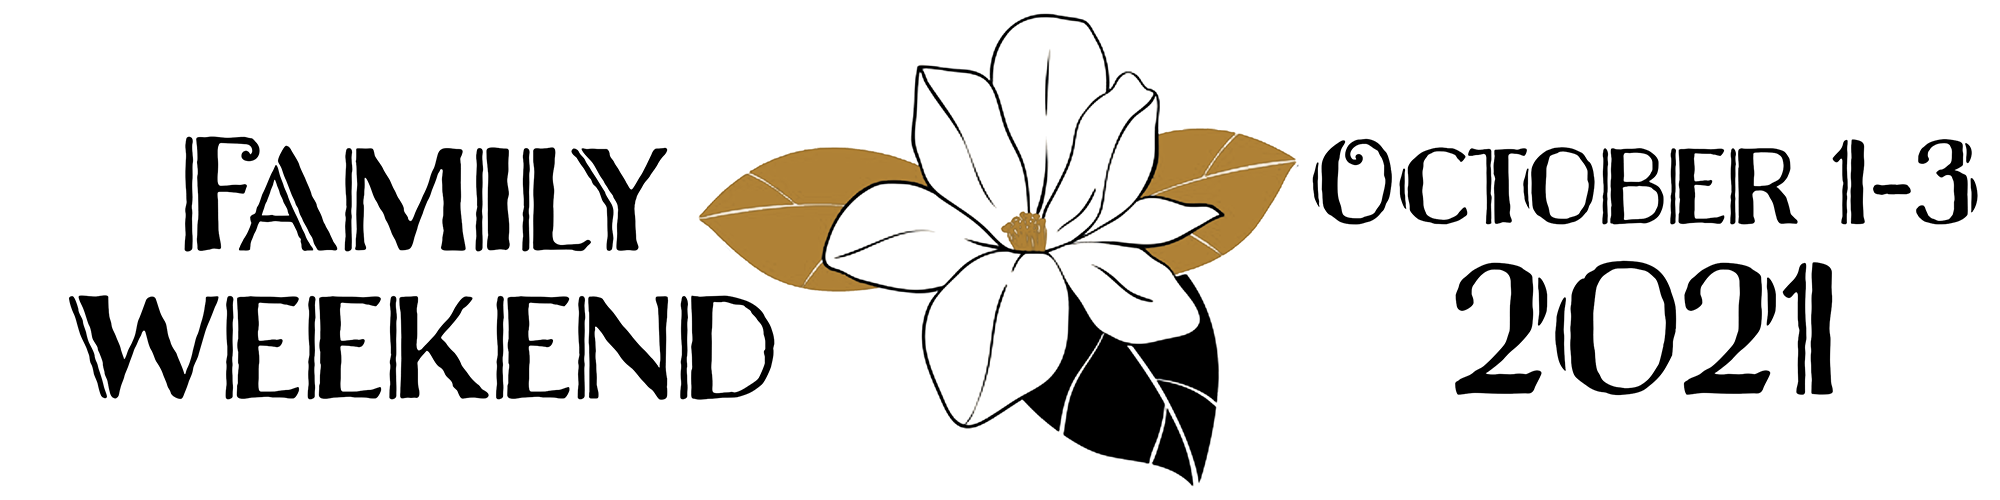 WFU Family Weekend 2021 Logo shows a Magnolia Flower and the event date, Octobe 1-3, 2021